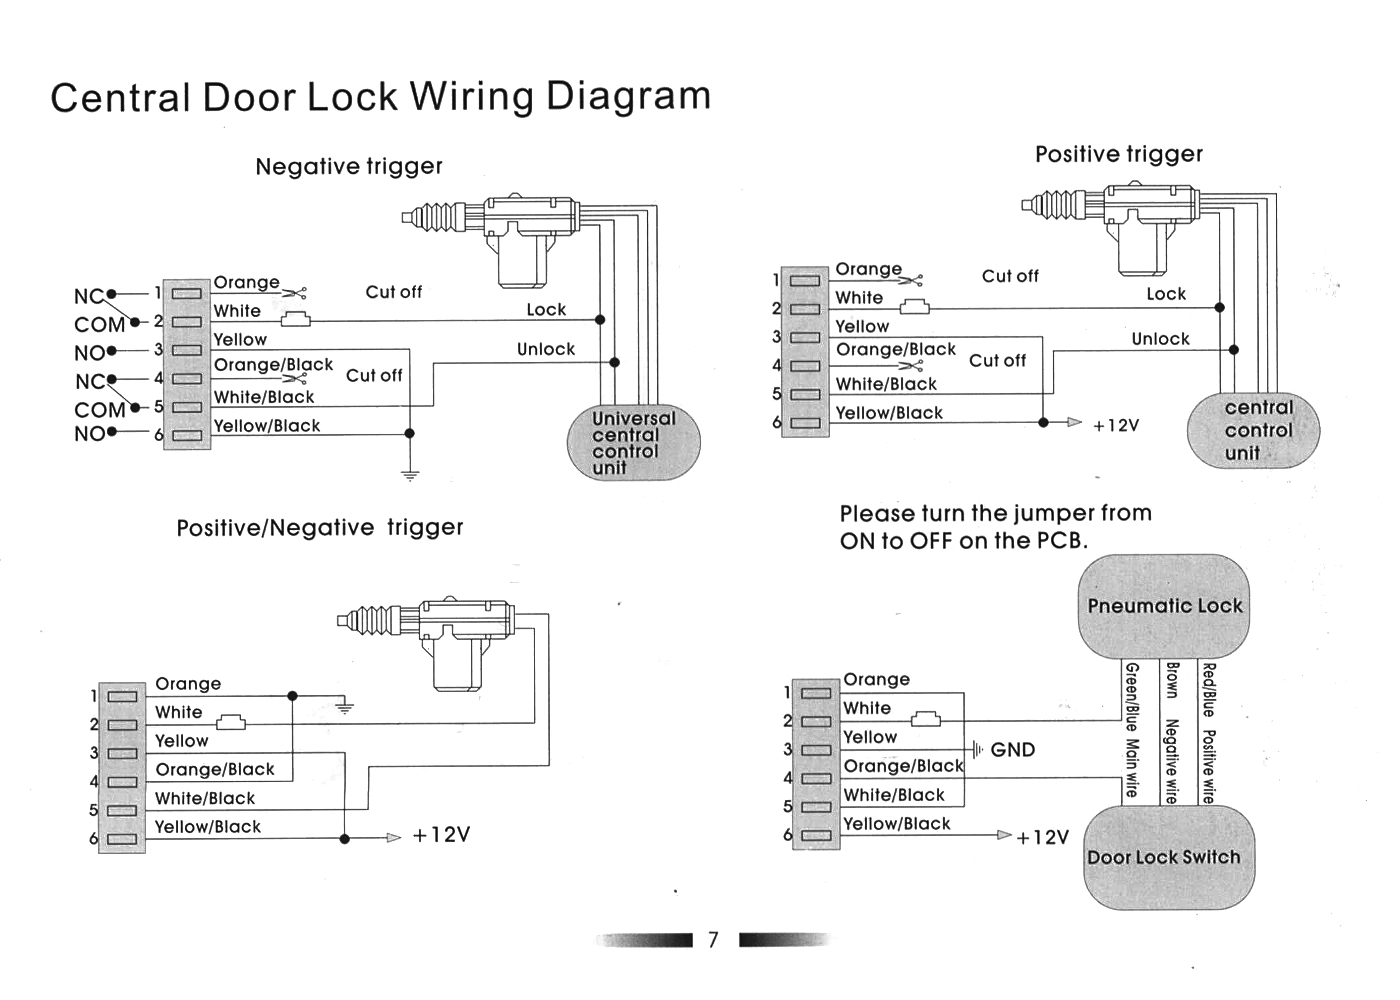 Ra 1672  Wiring Diagram Vanguard Mtd000007 Schematic Wiring